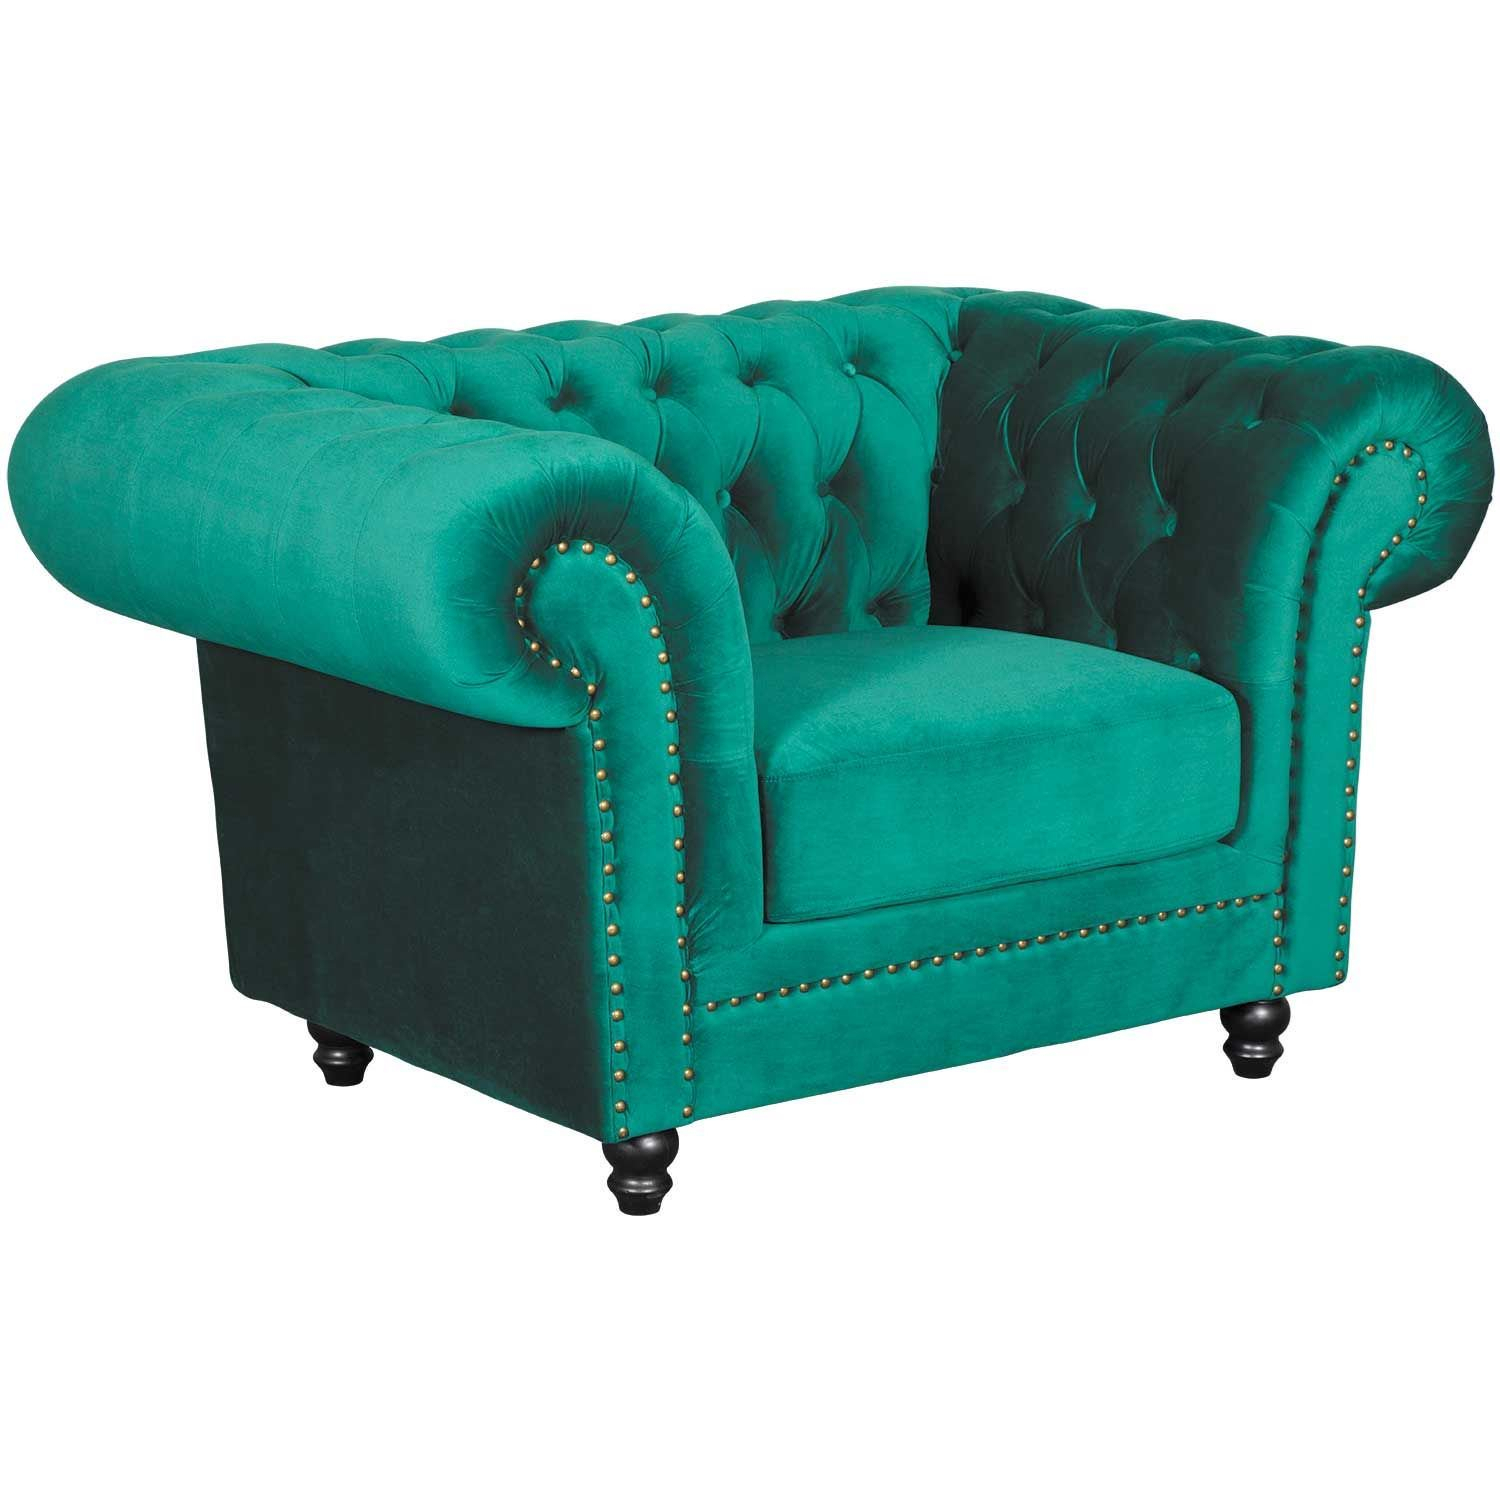 Callie Tufted Emerald Chair | My225 S1/cc 42 | Cambridge Home | Afw Pertaining To Callie Sofa Chairs (Image 16 of 25)